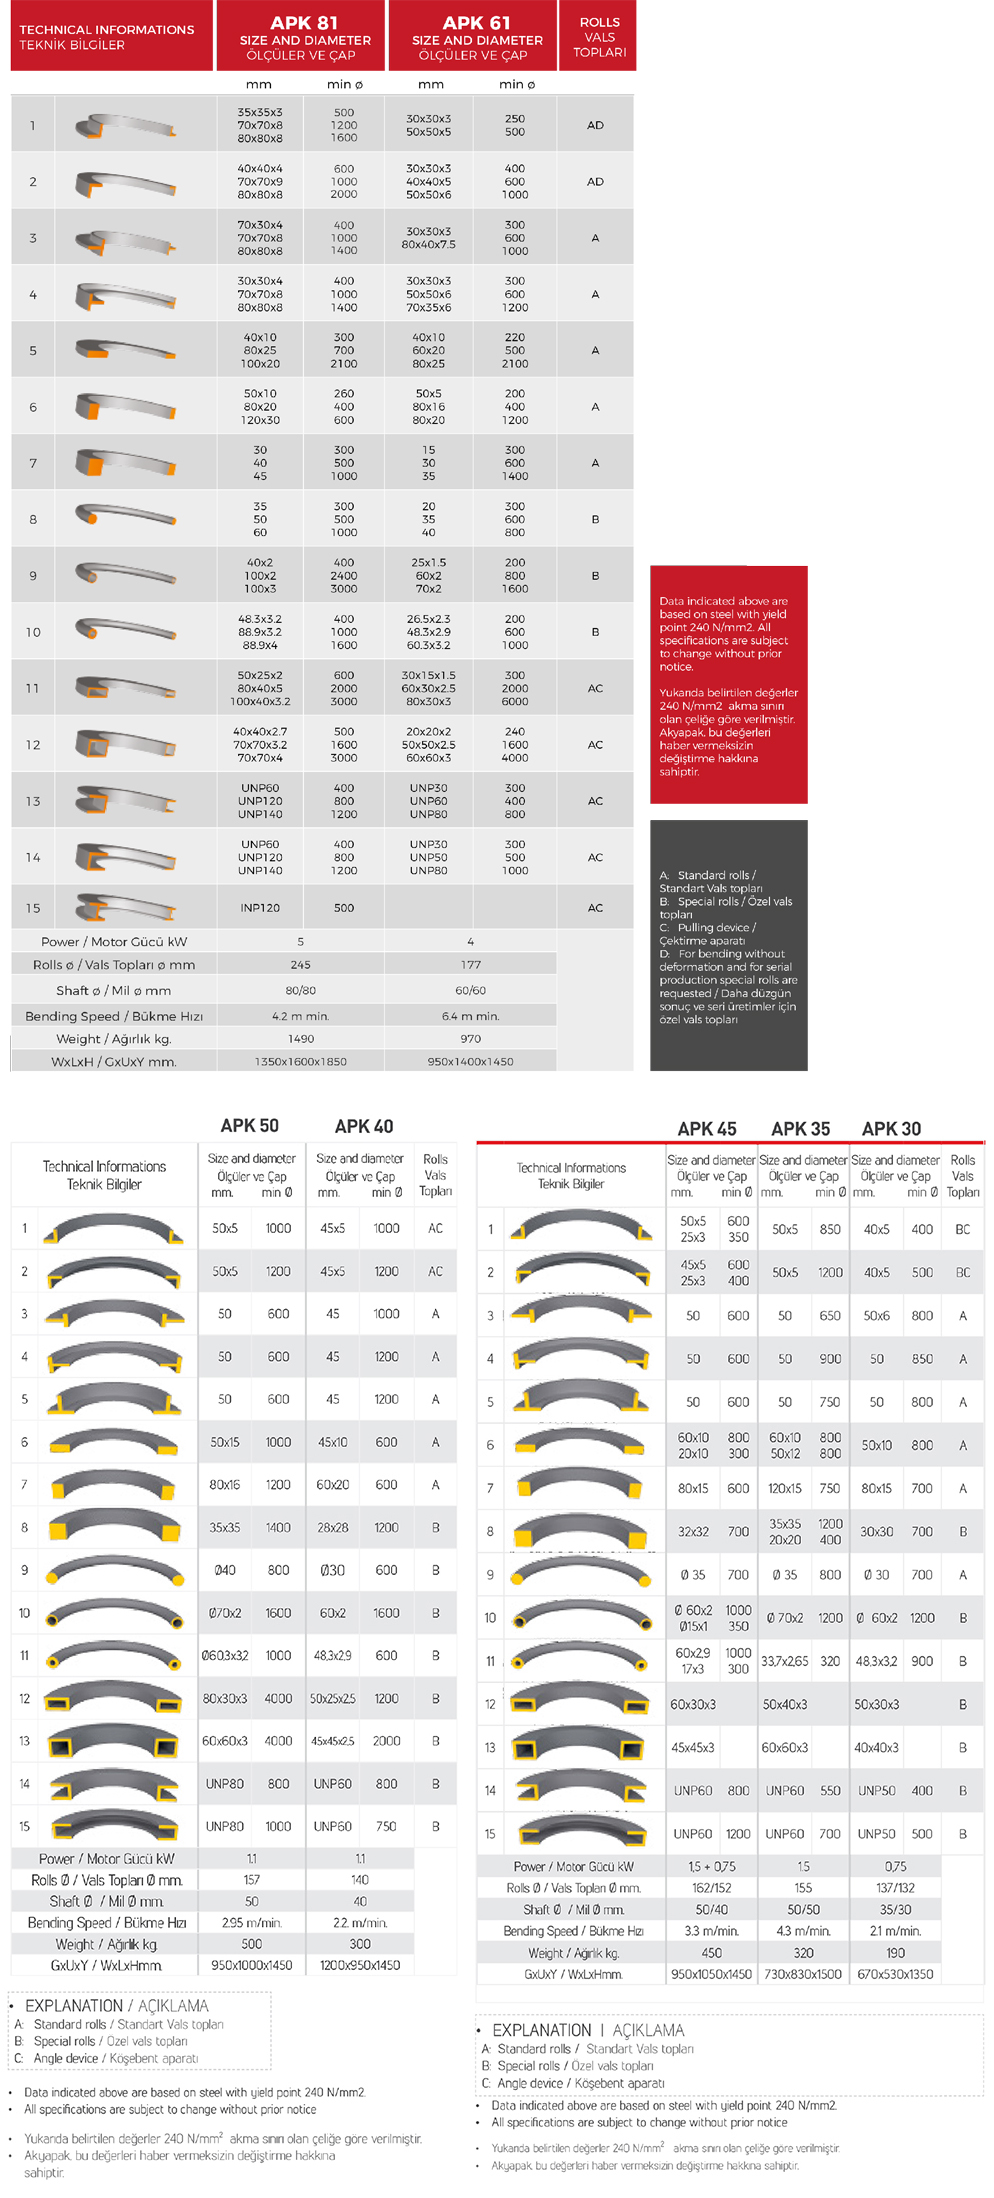 APK Small Series Angle Rolls Technical Specifications